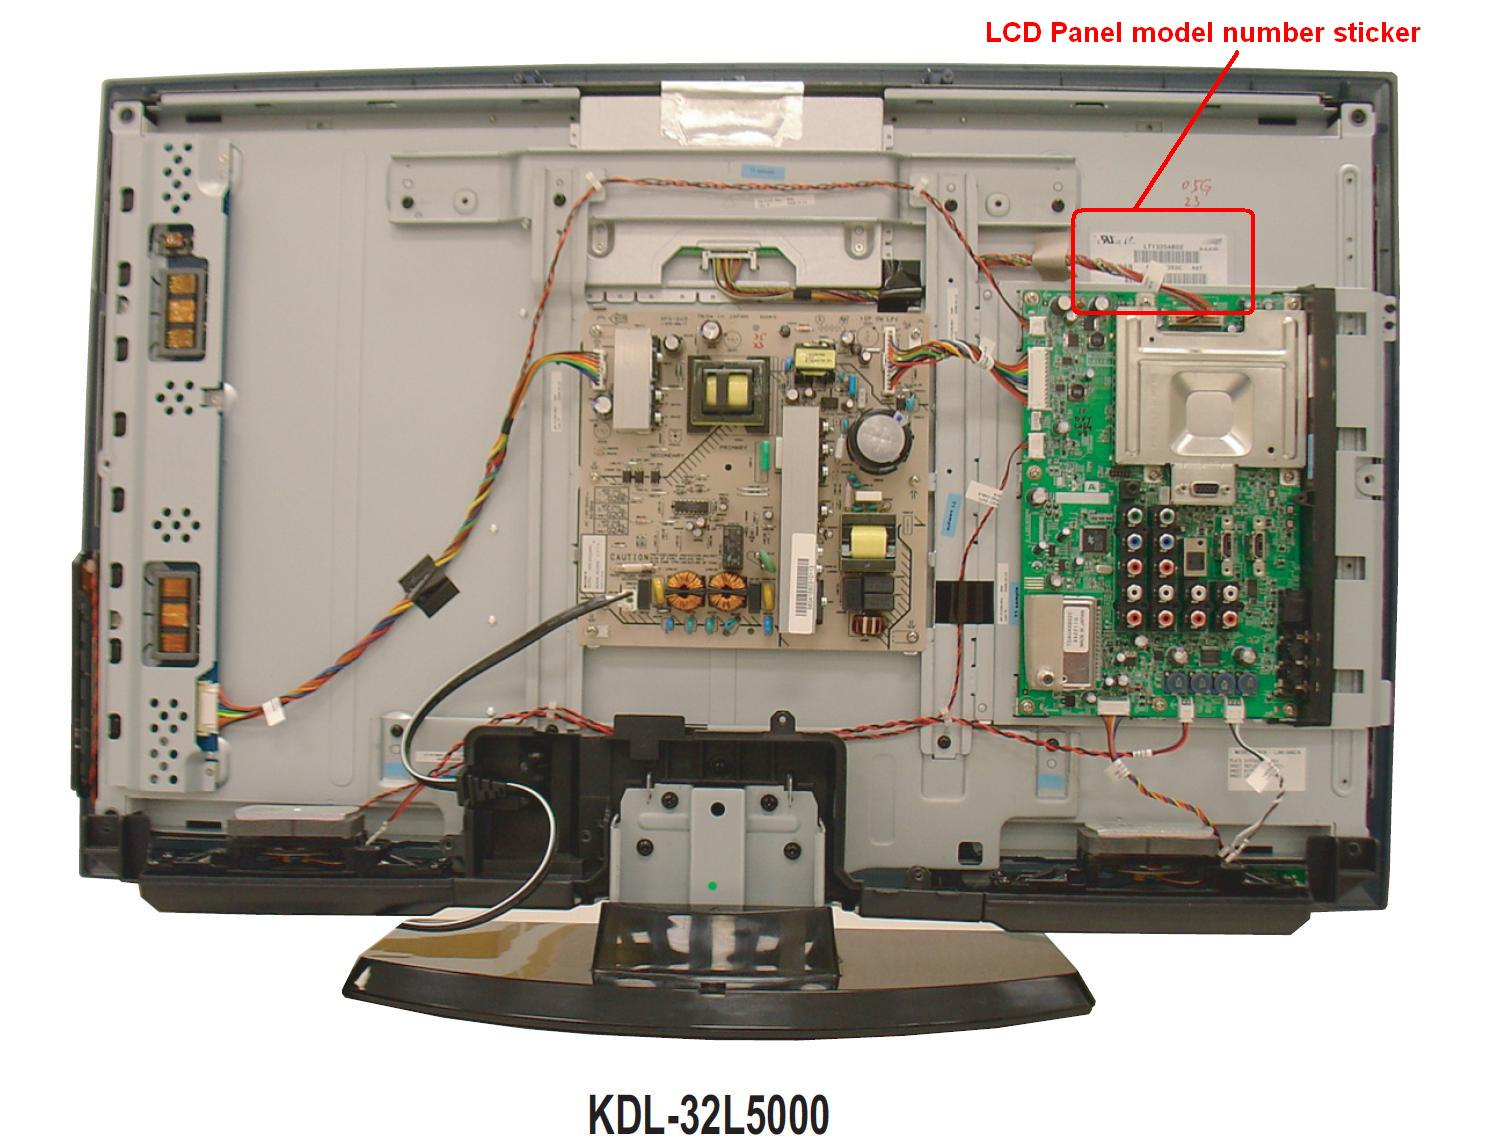 Can The Lcd Panel On A Kdl 325000 Be Replaced The Front